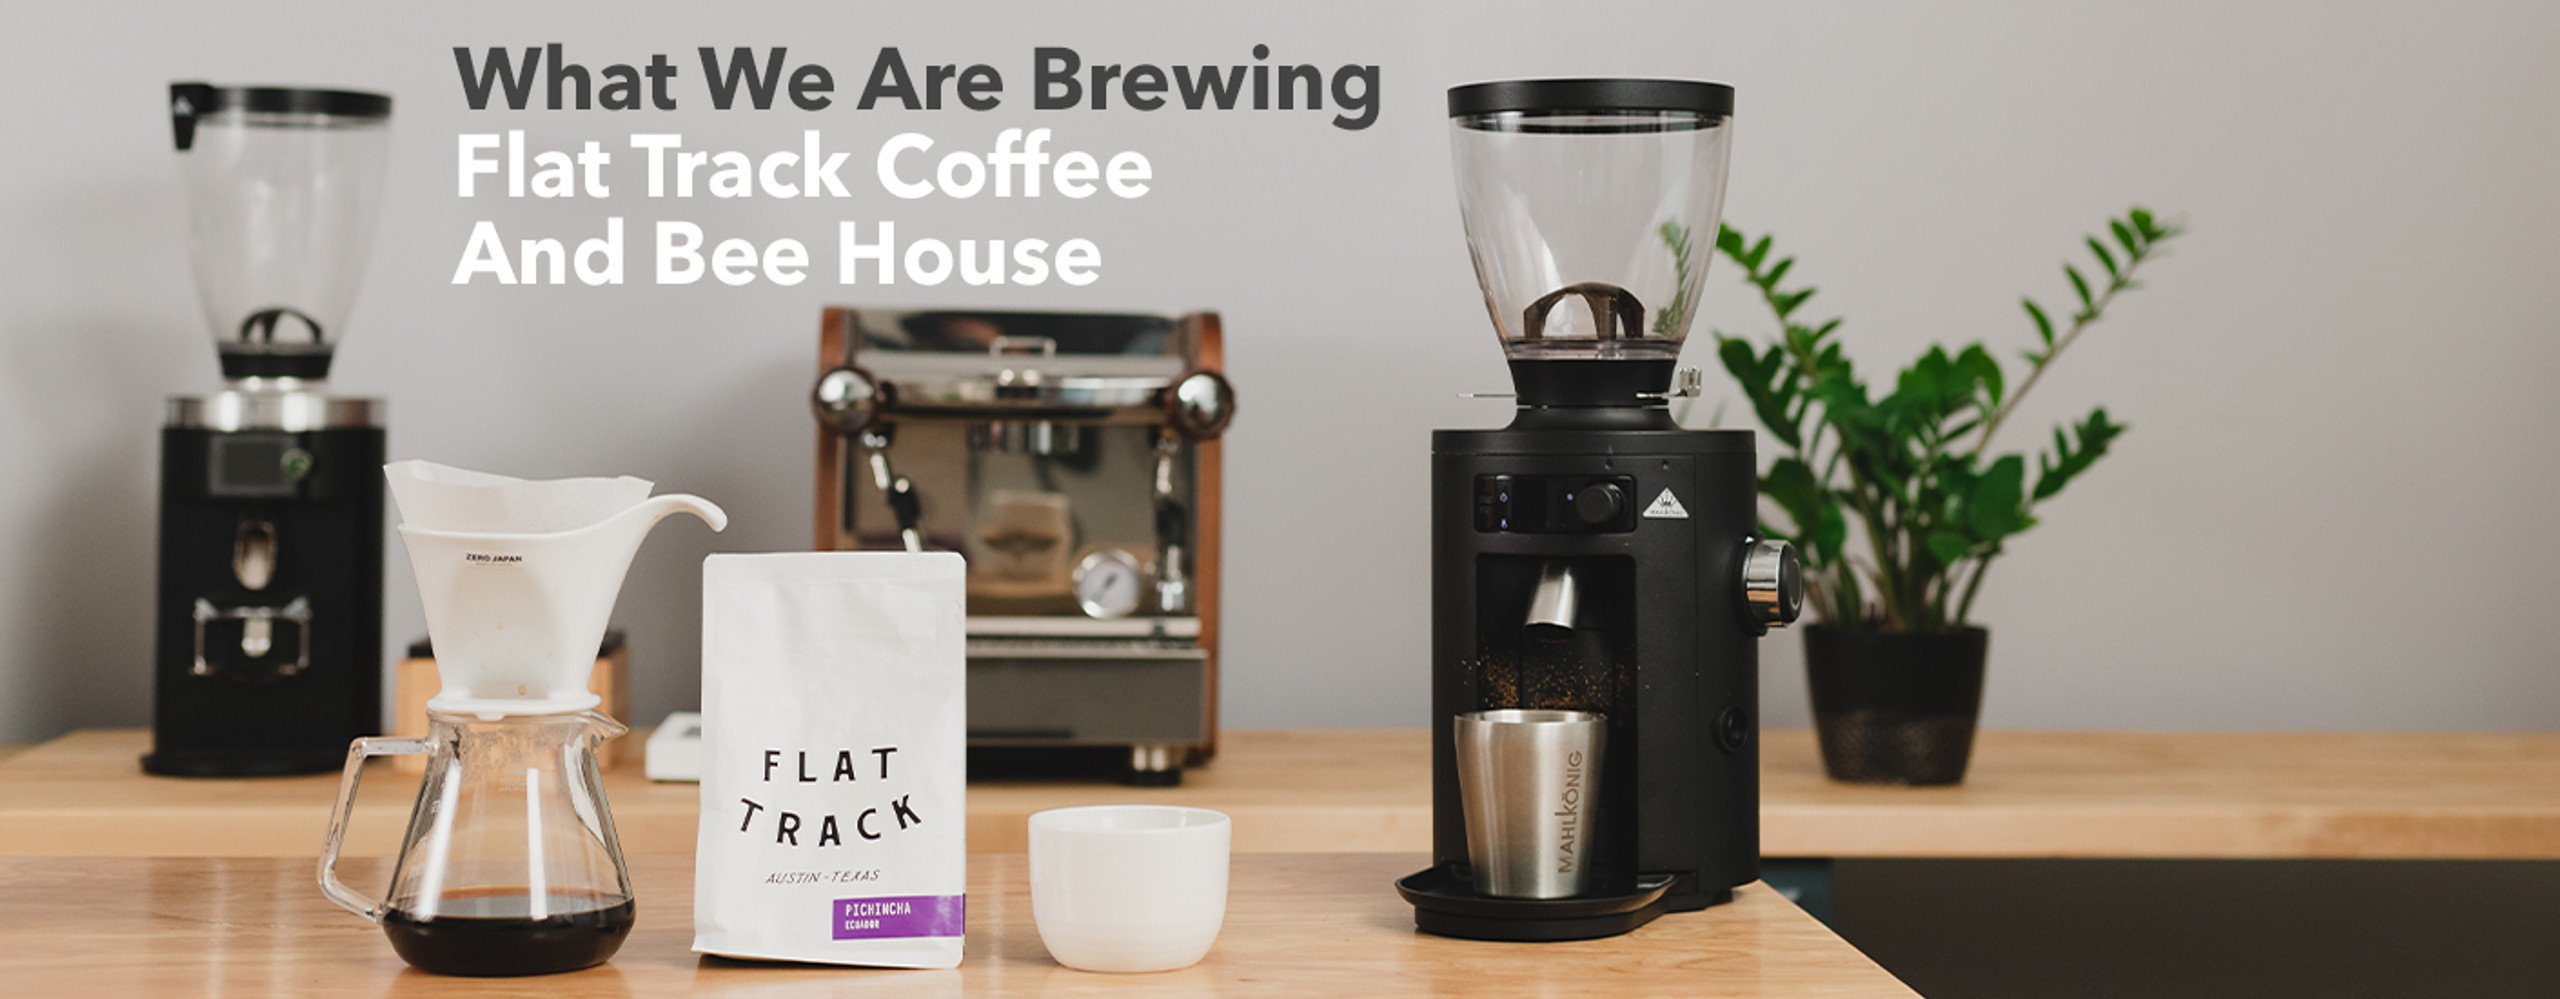 What We Are Brewing: Flat Track Coffee